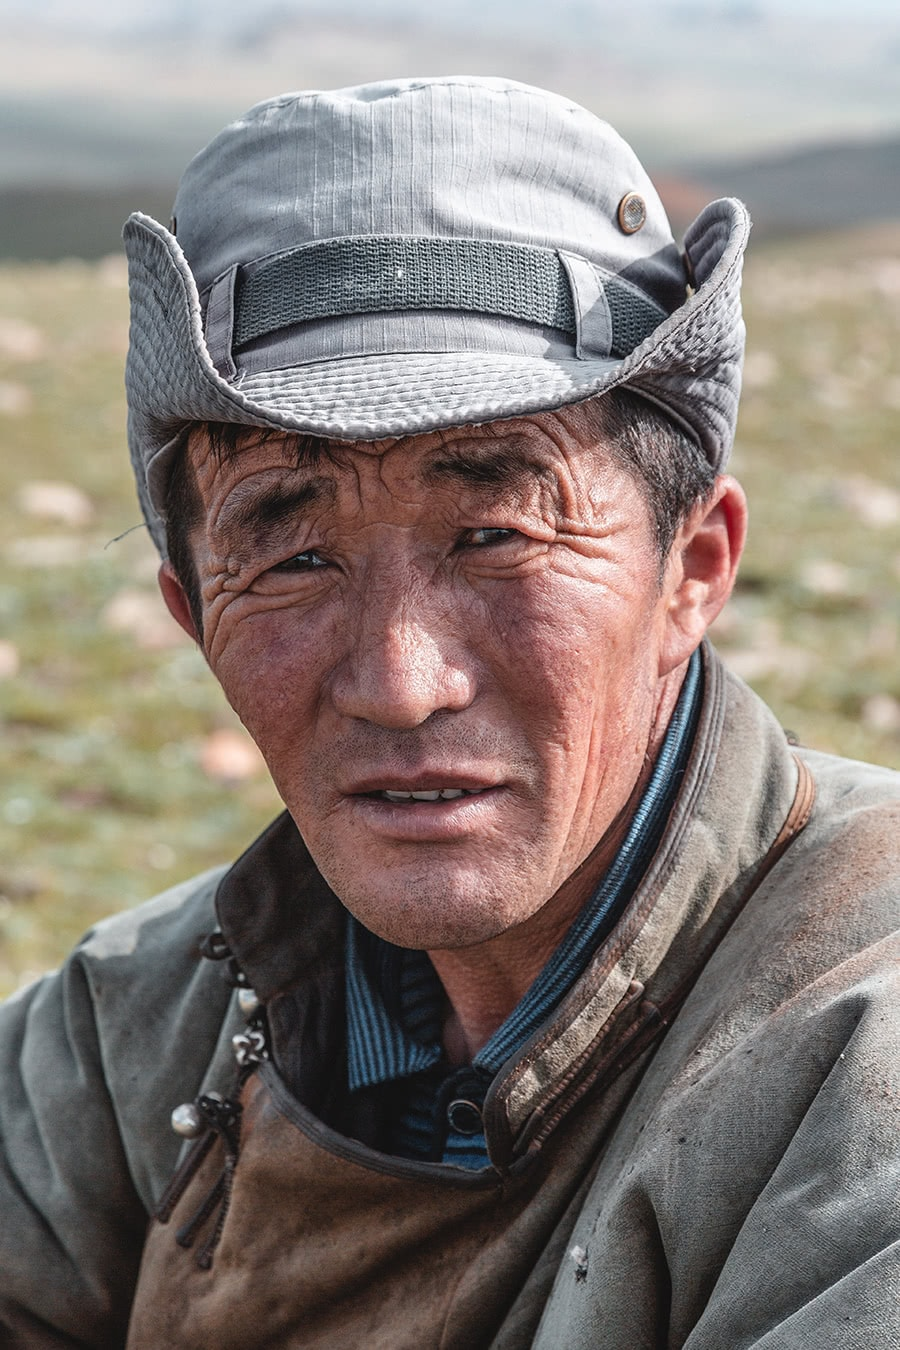 A man from the Myangad Mongol ethnic group in western Mongolia.